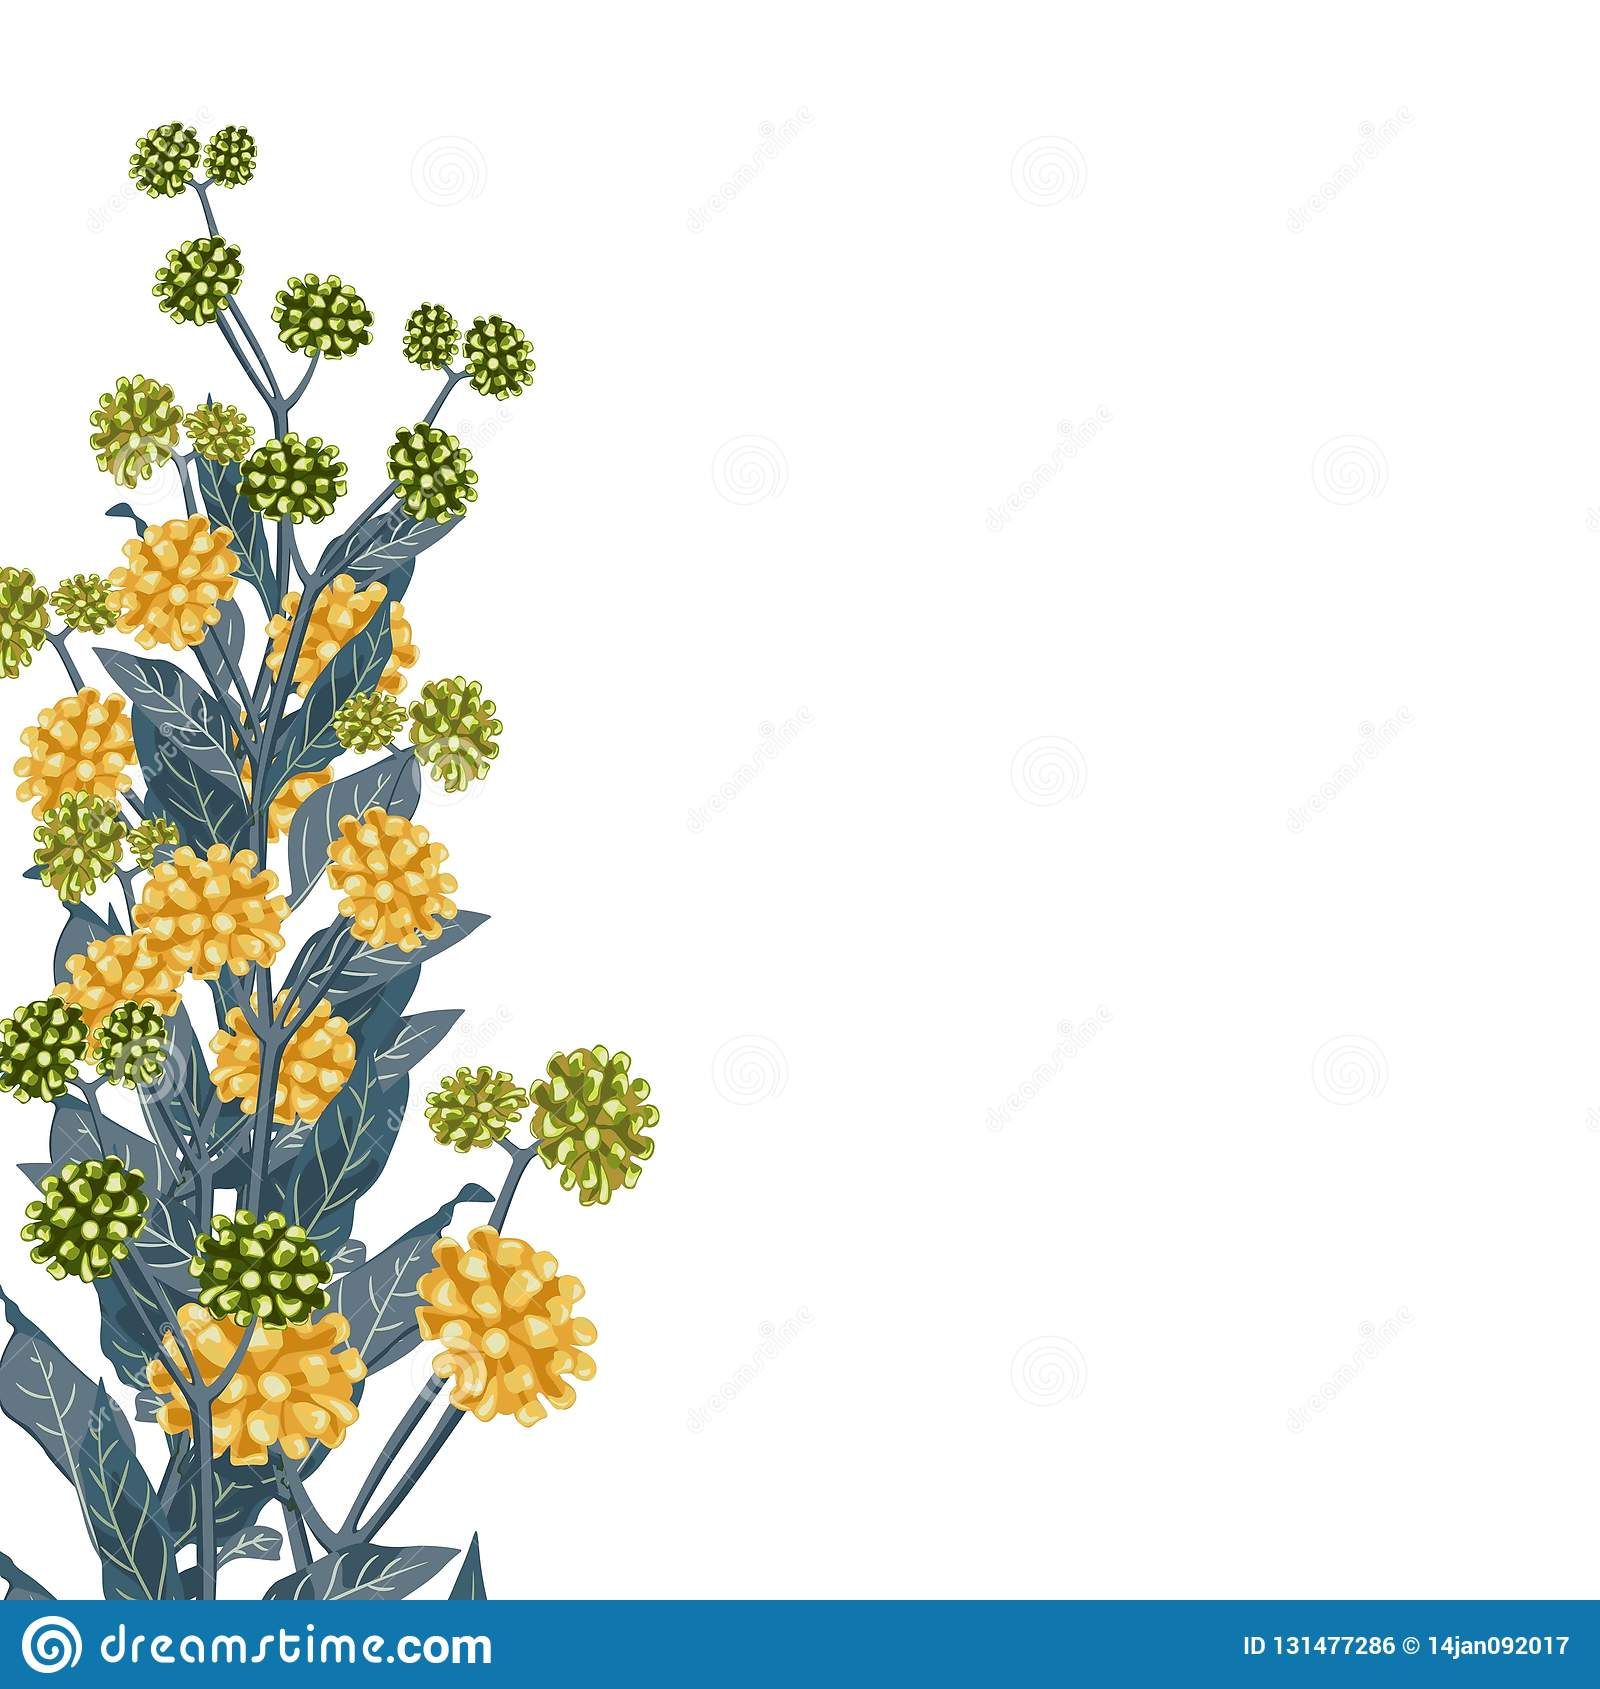 Wild yellow flowers with blue leaves. A spring decorative bouquet.